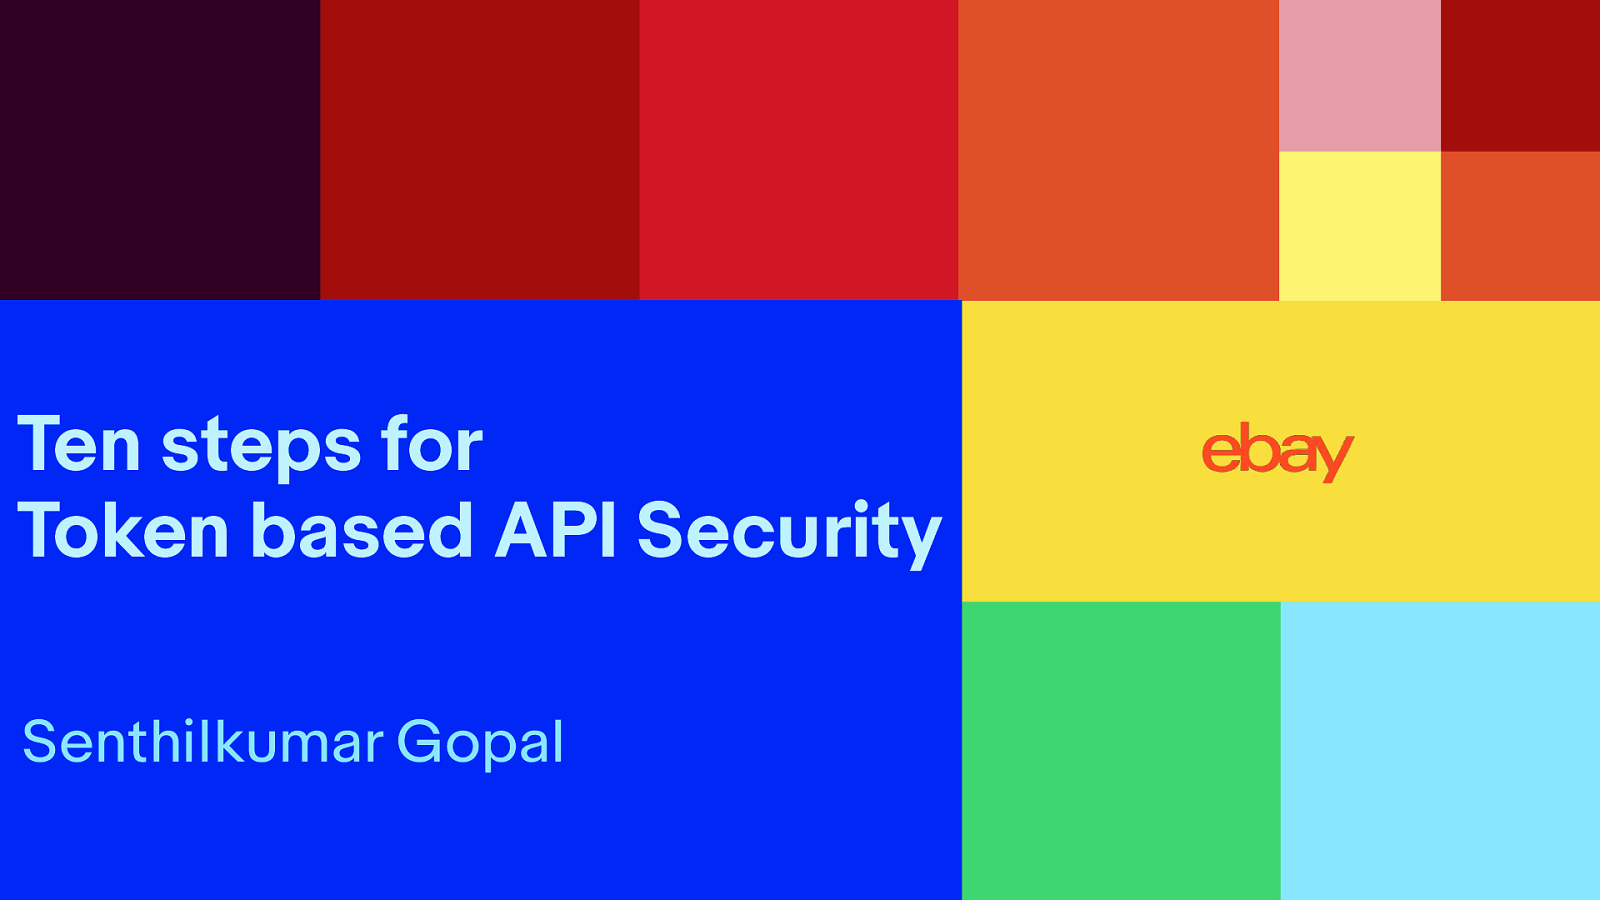 Ten Steps for Token based API Security